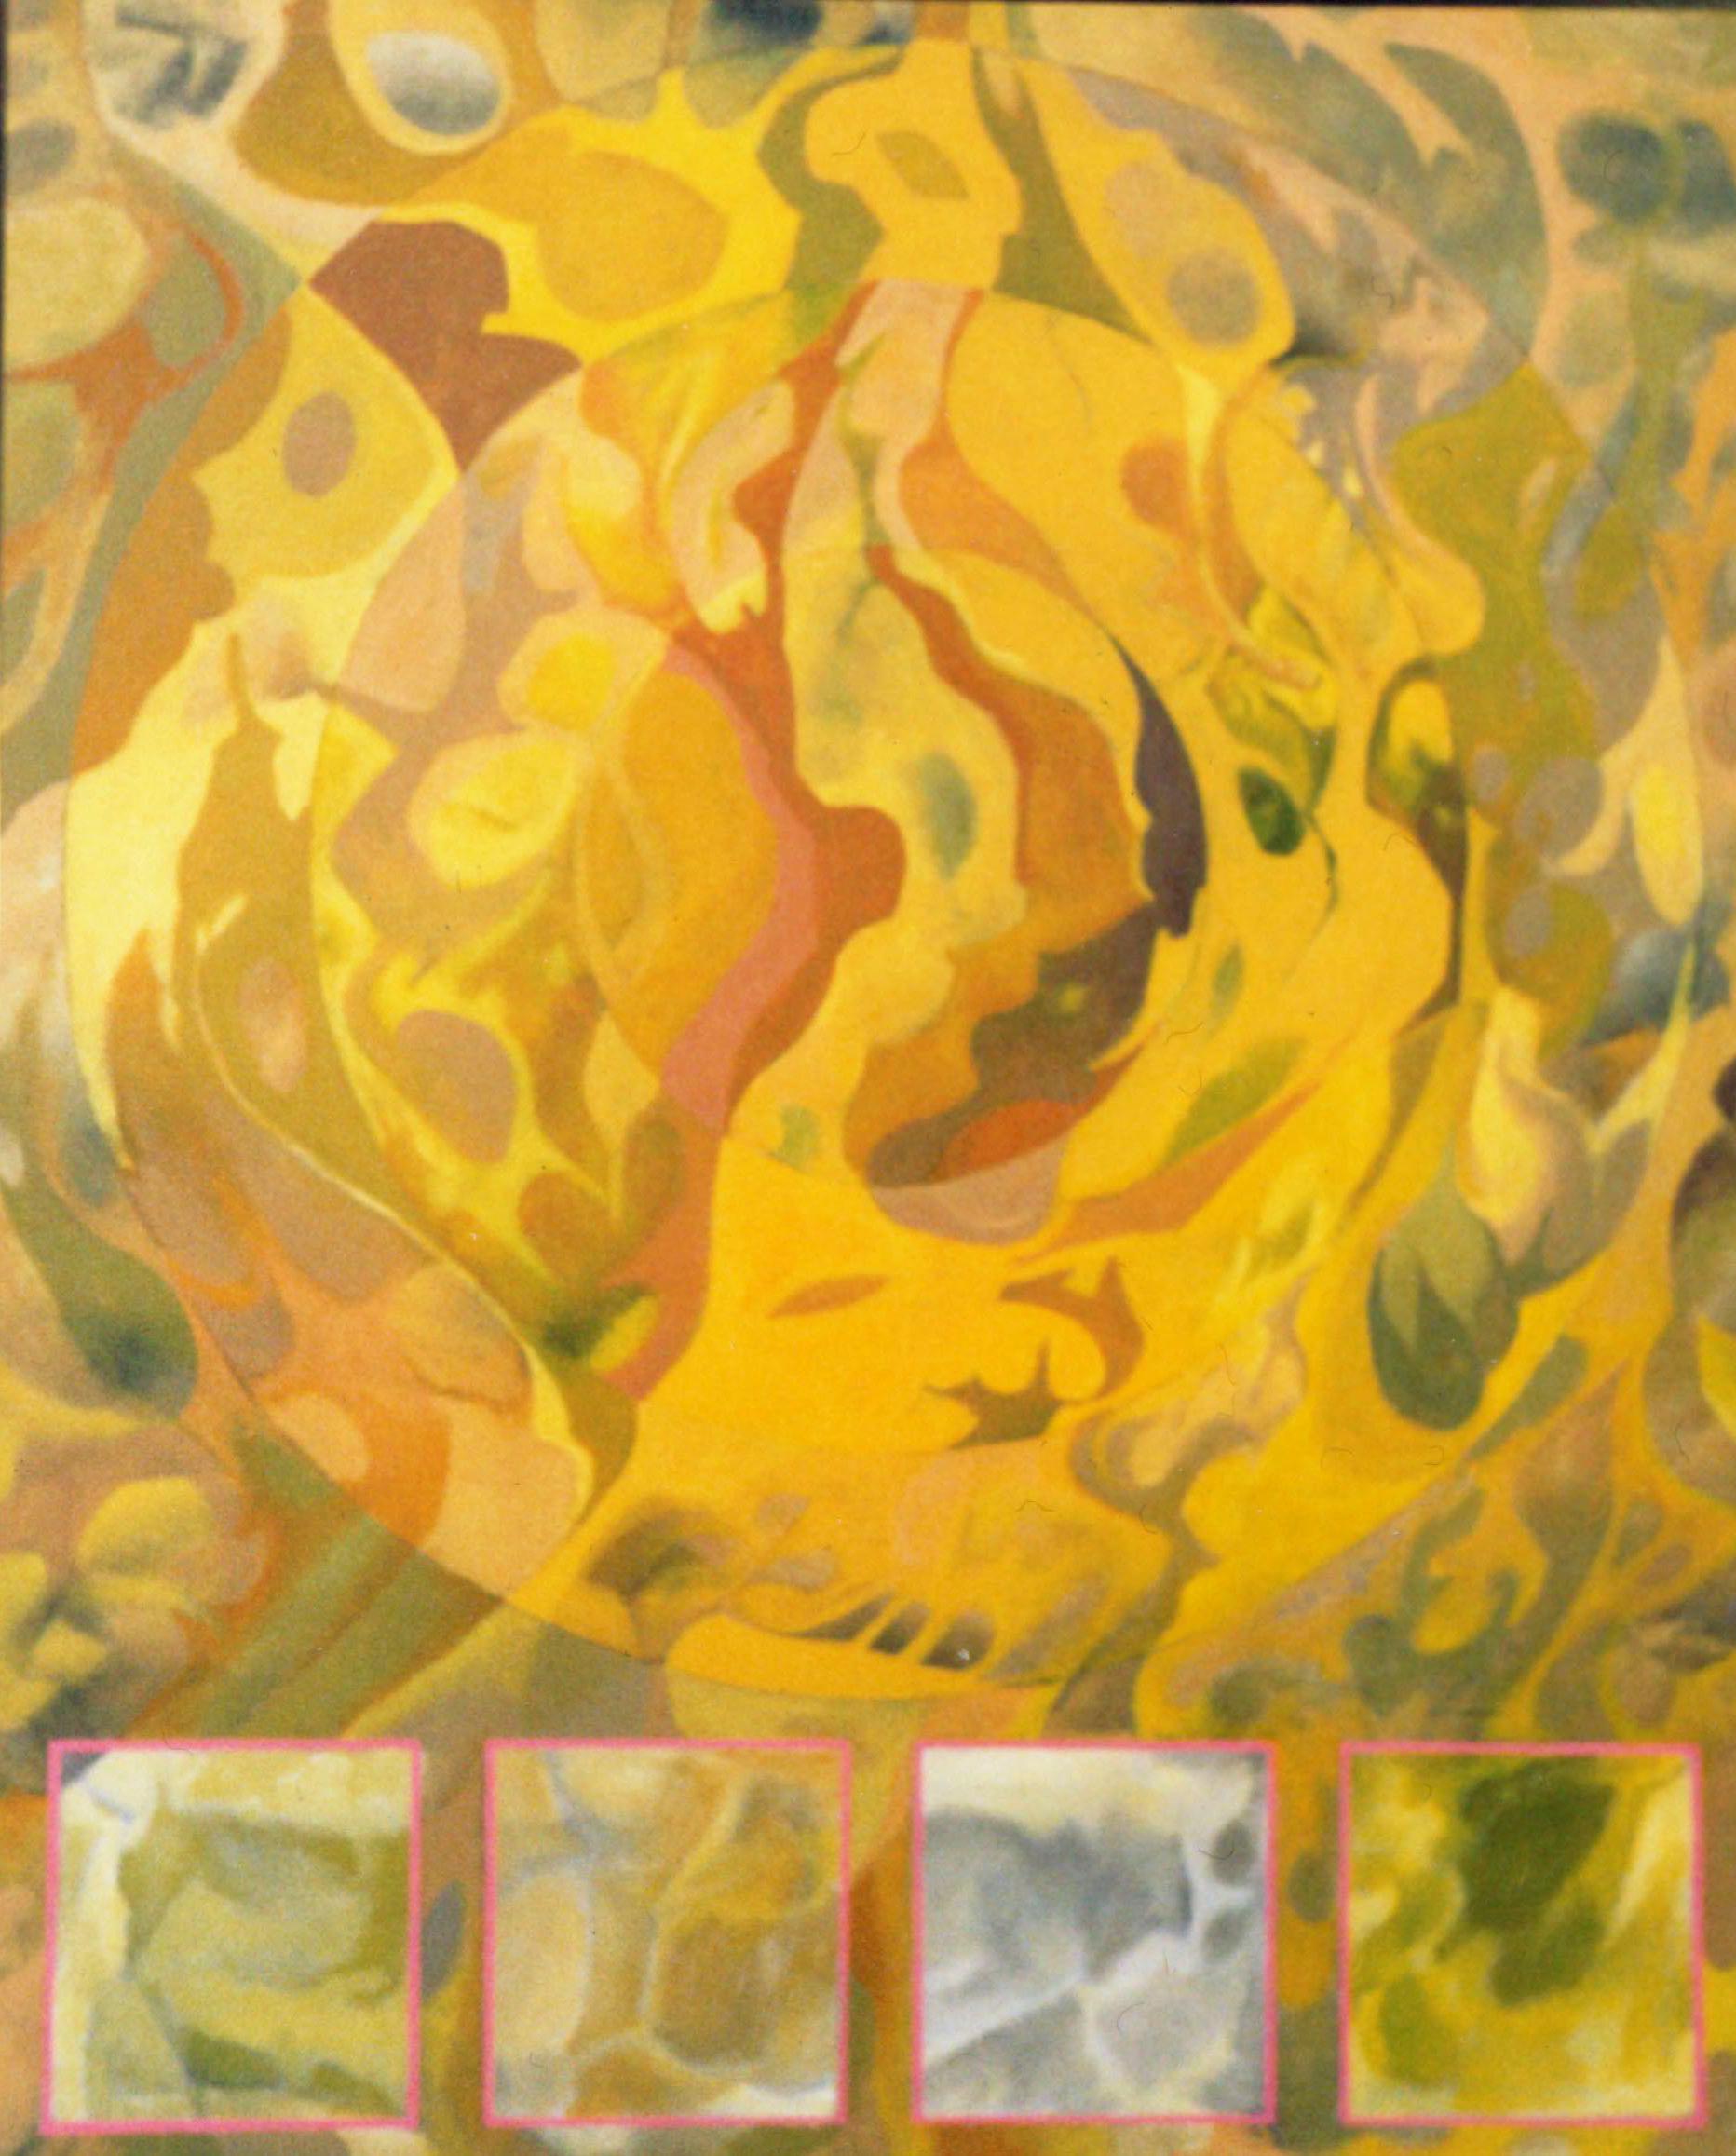 Gold Circle with Four Squares painting done by Robert Wilson